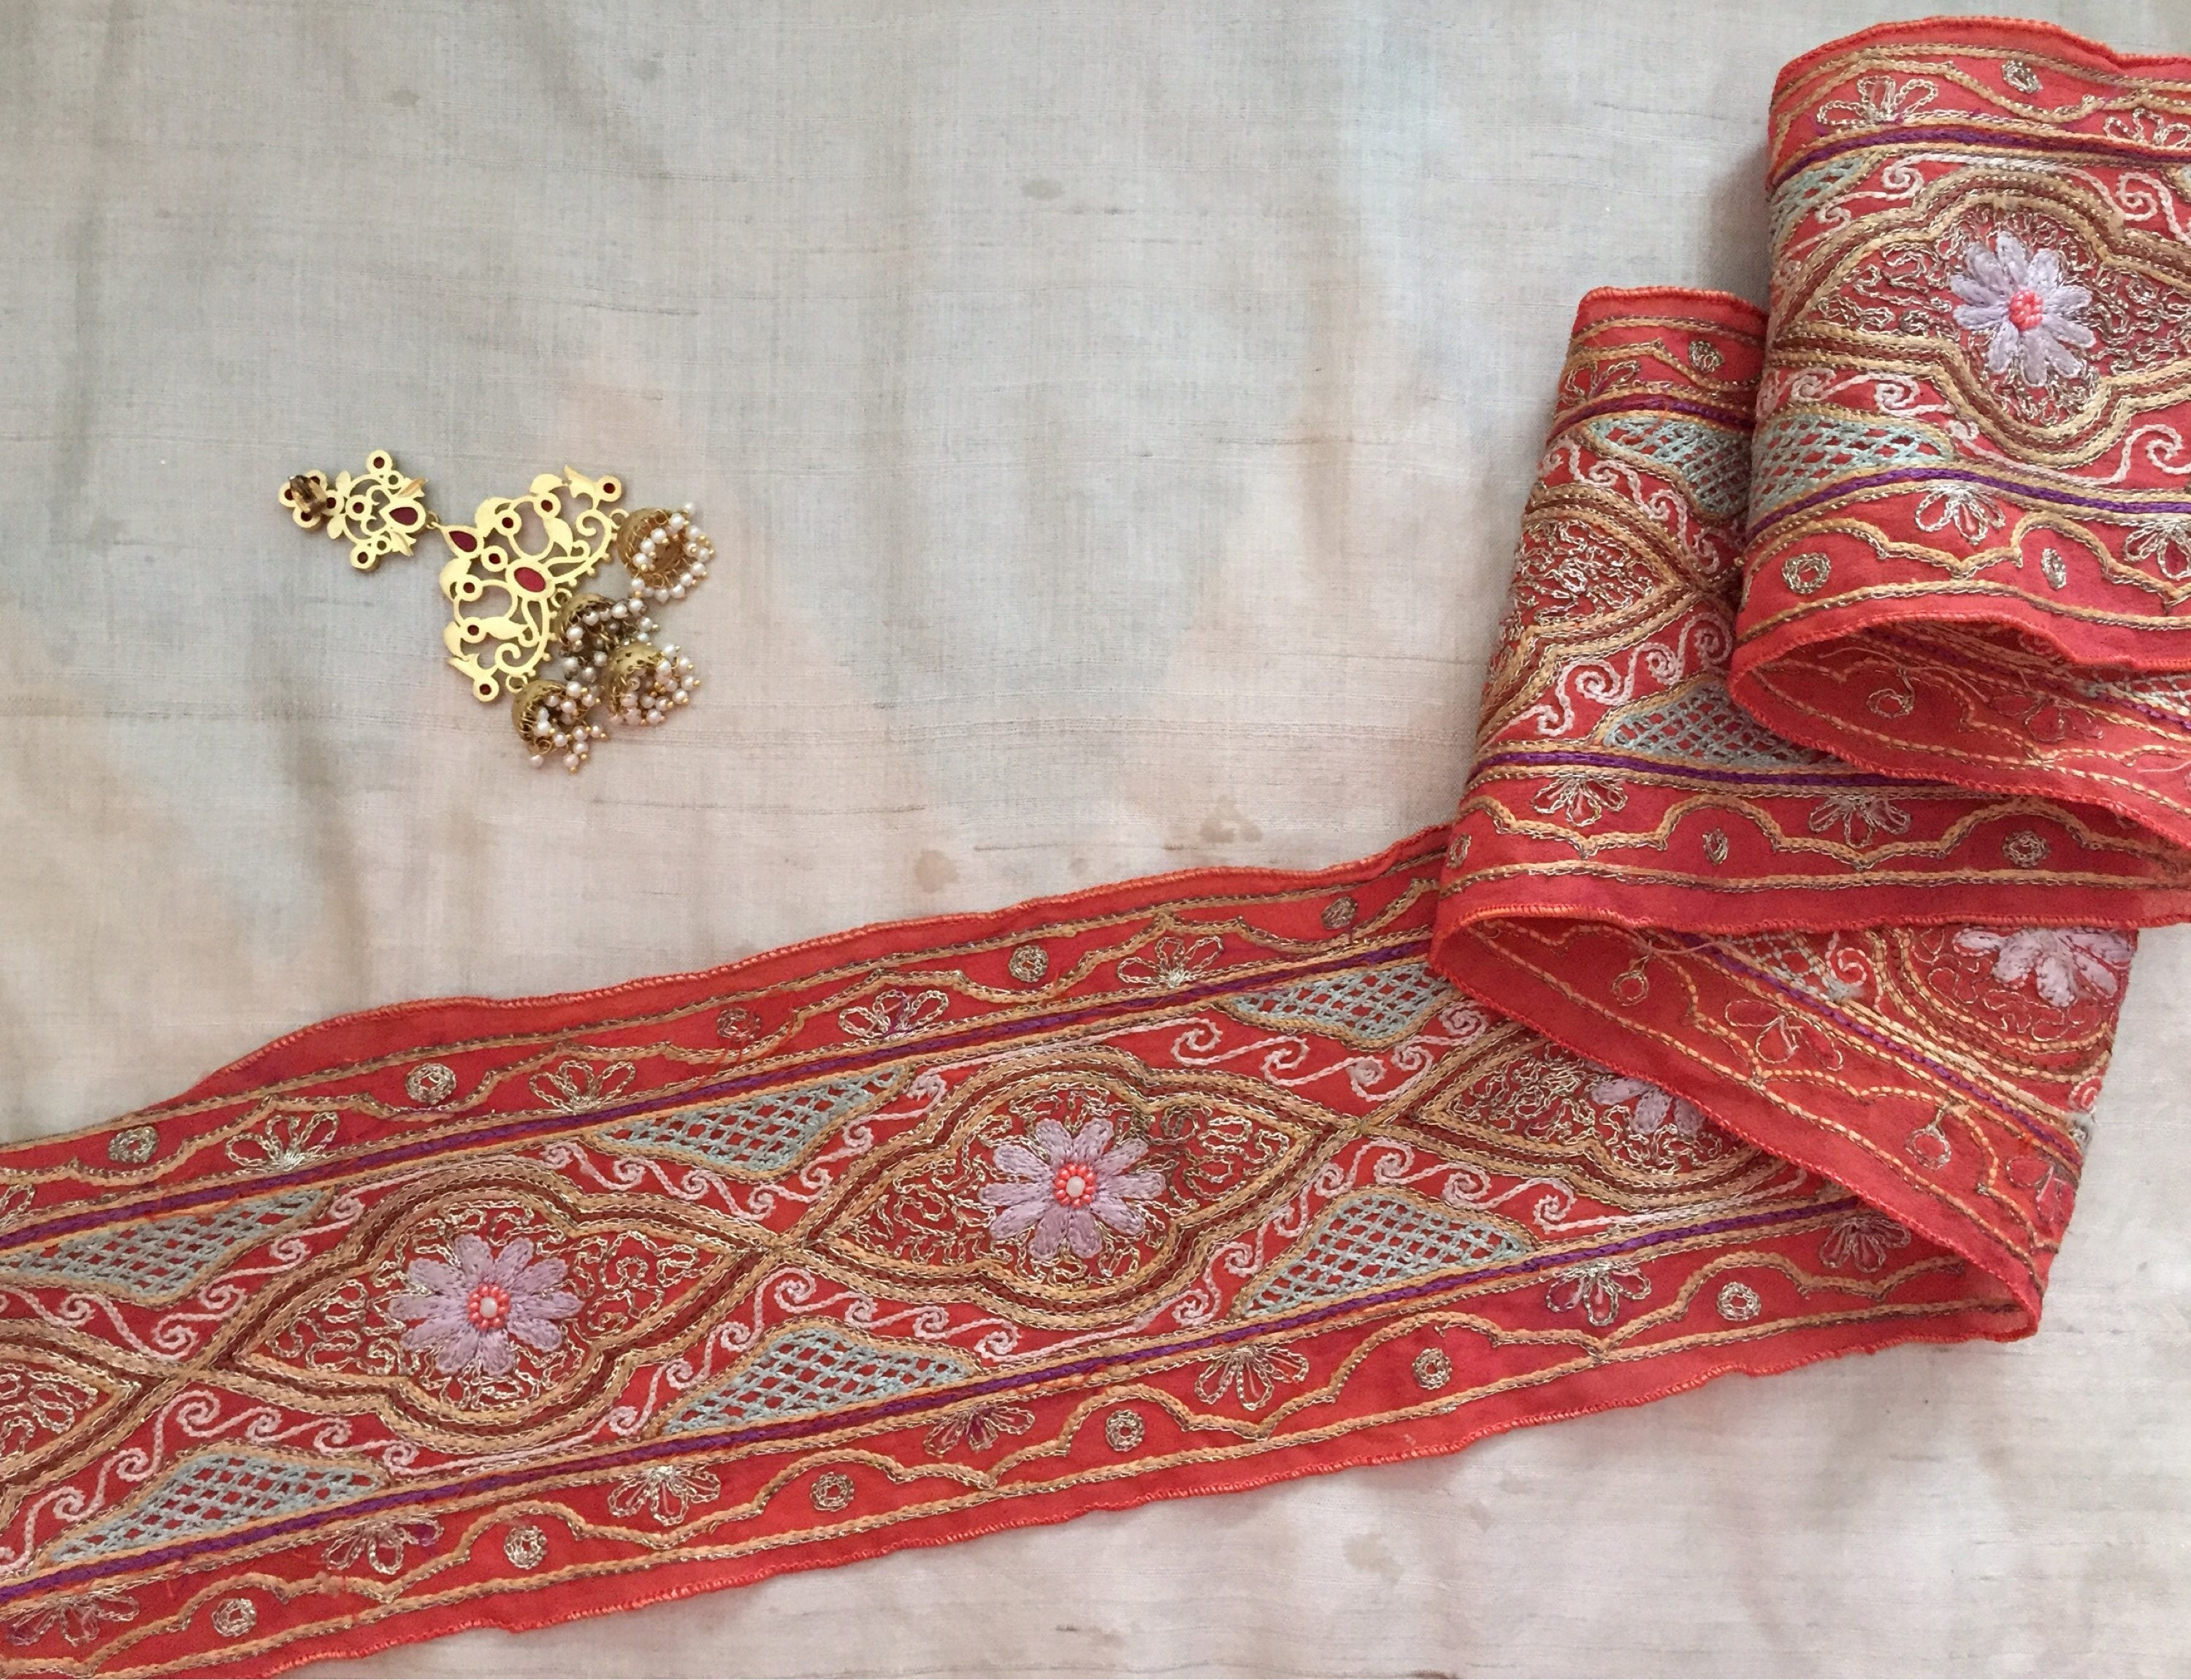 50 PIECE PERSIAN RED DEEP CREAM LACE COLLECTION